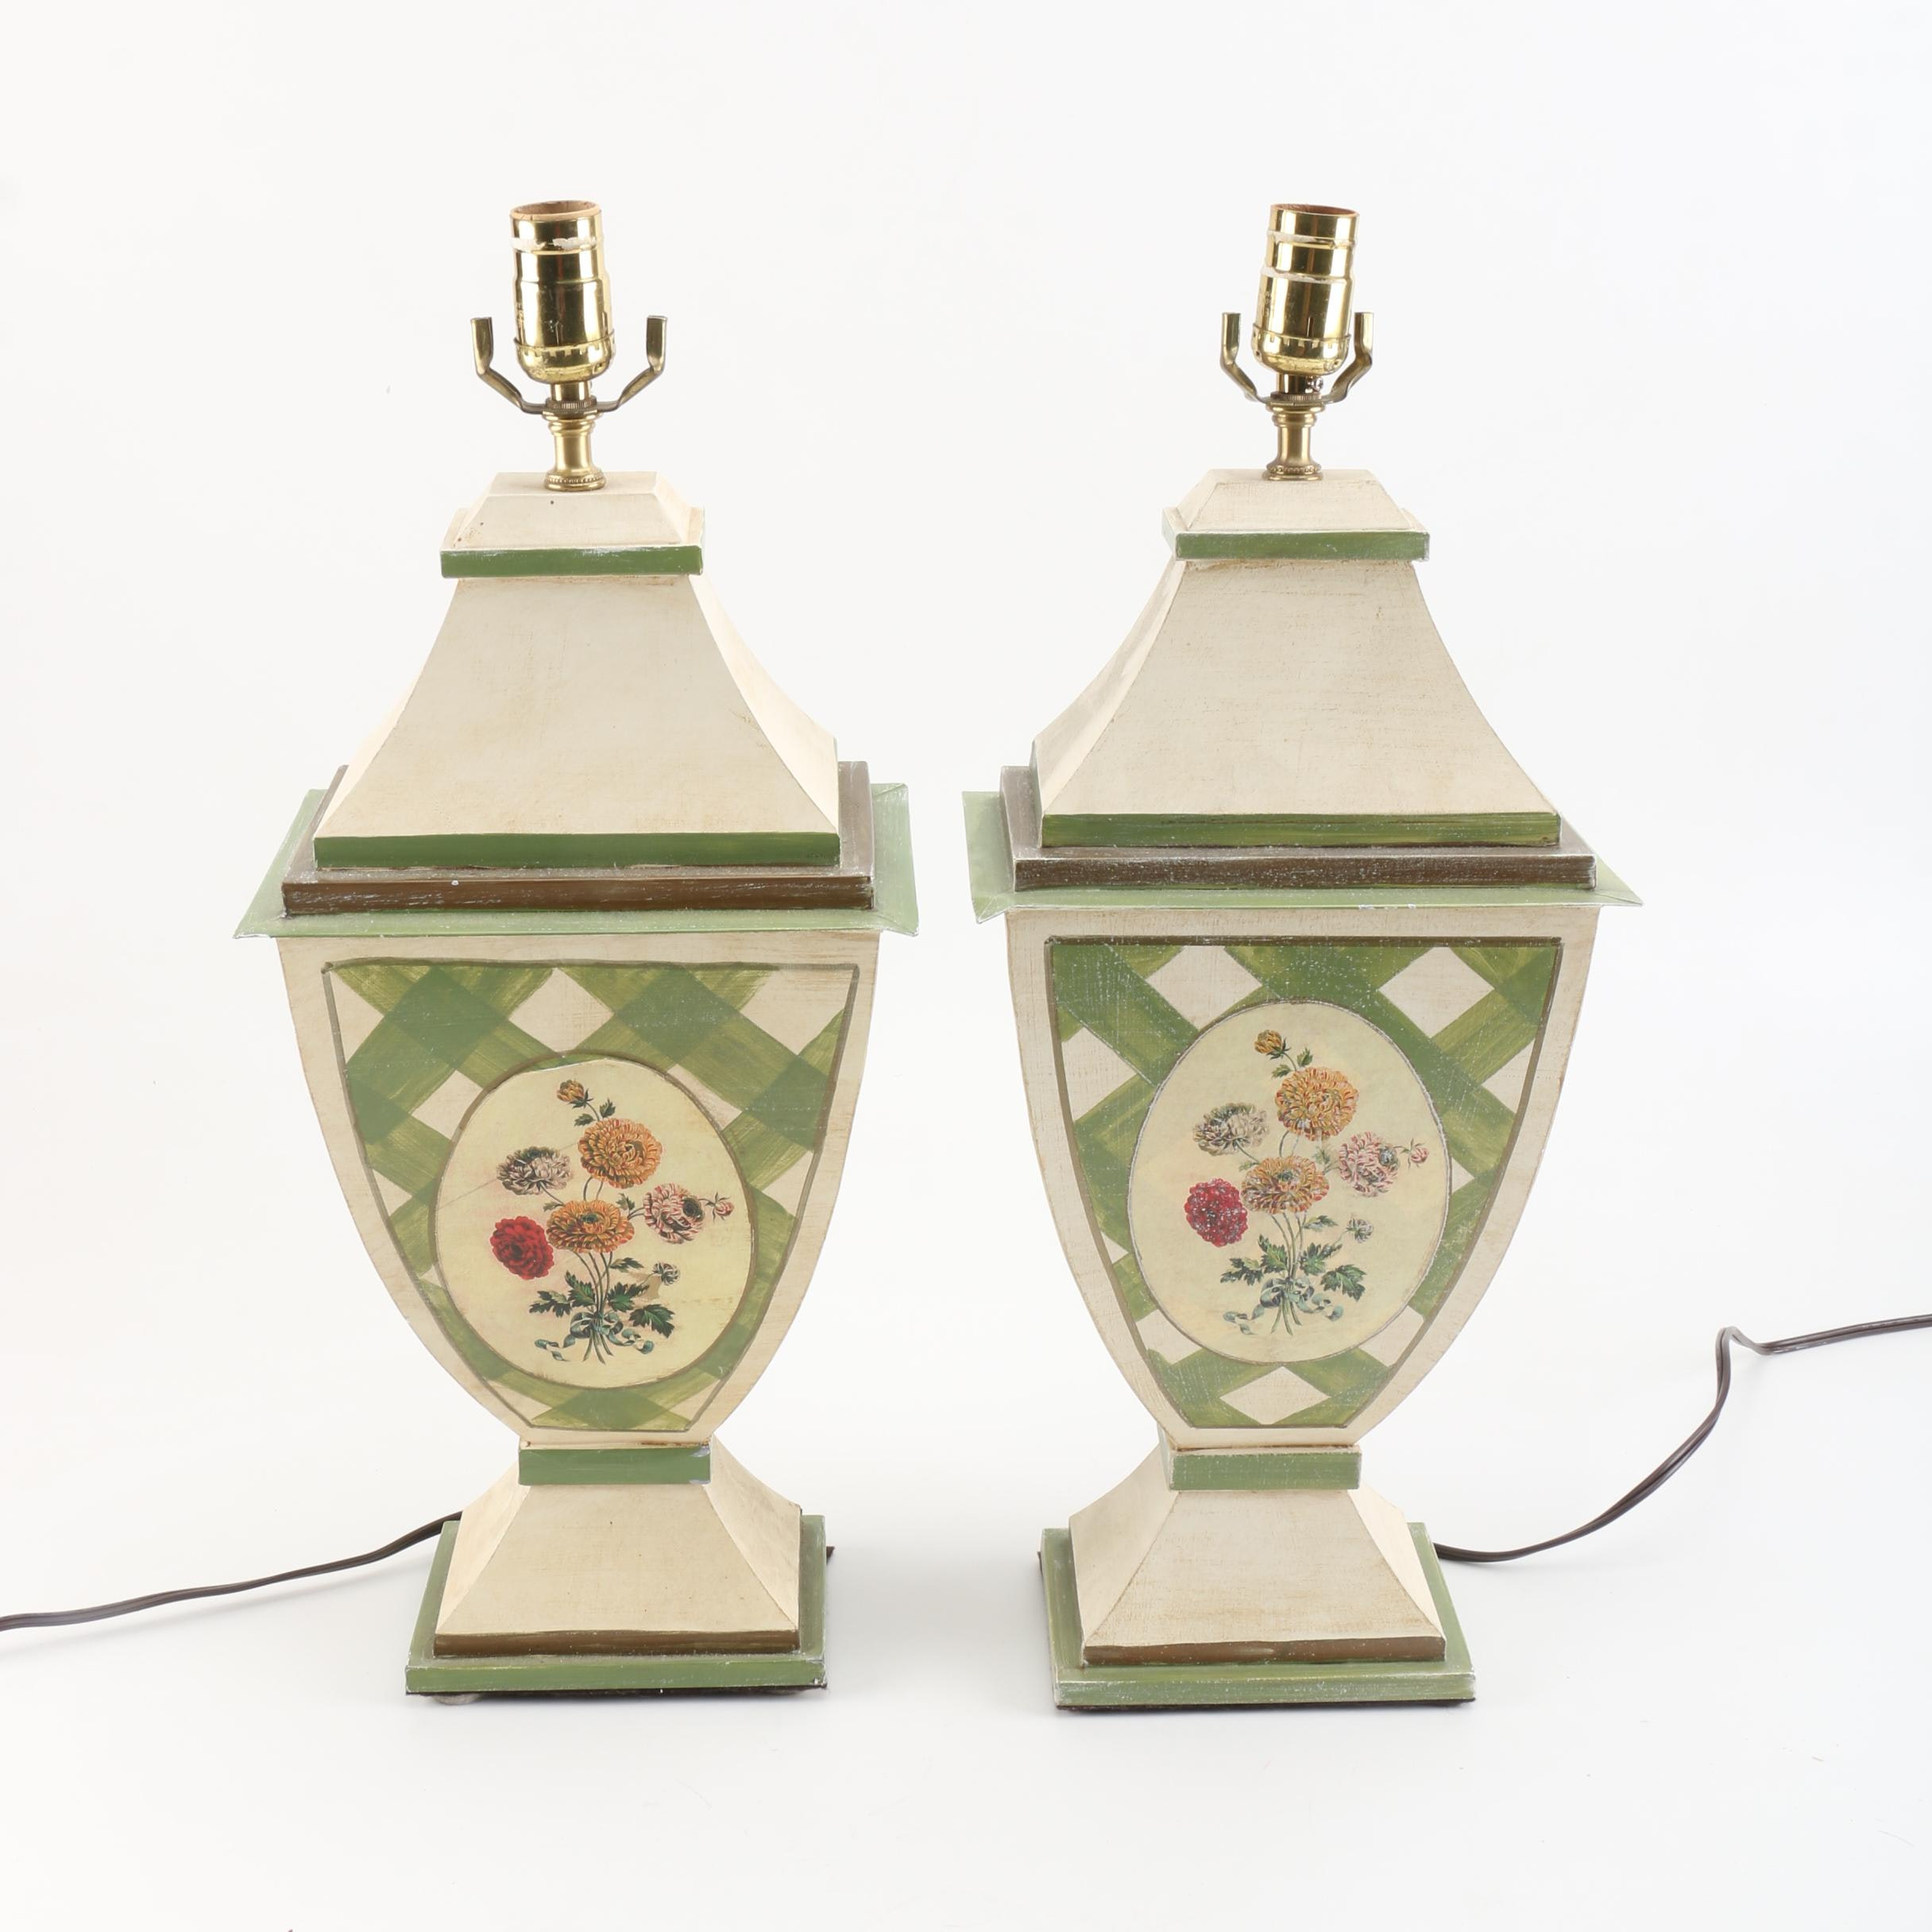 Pair of French Country Style Table Lamps